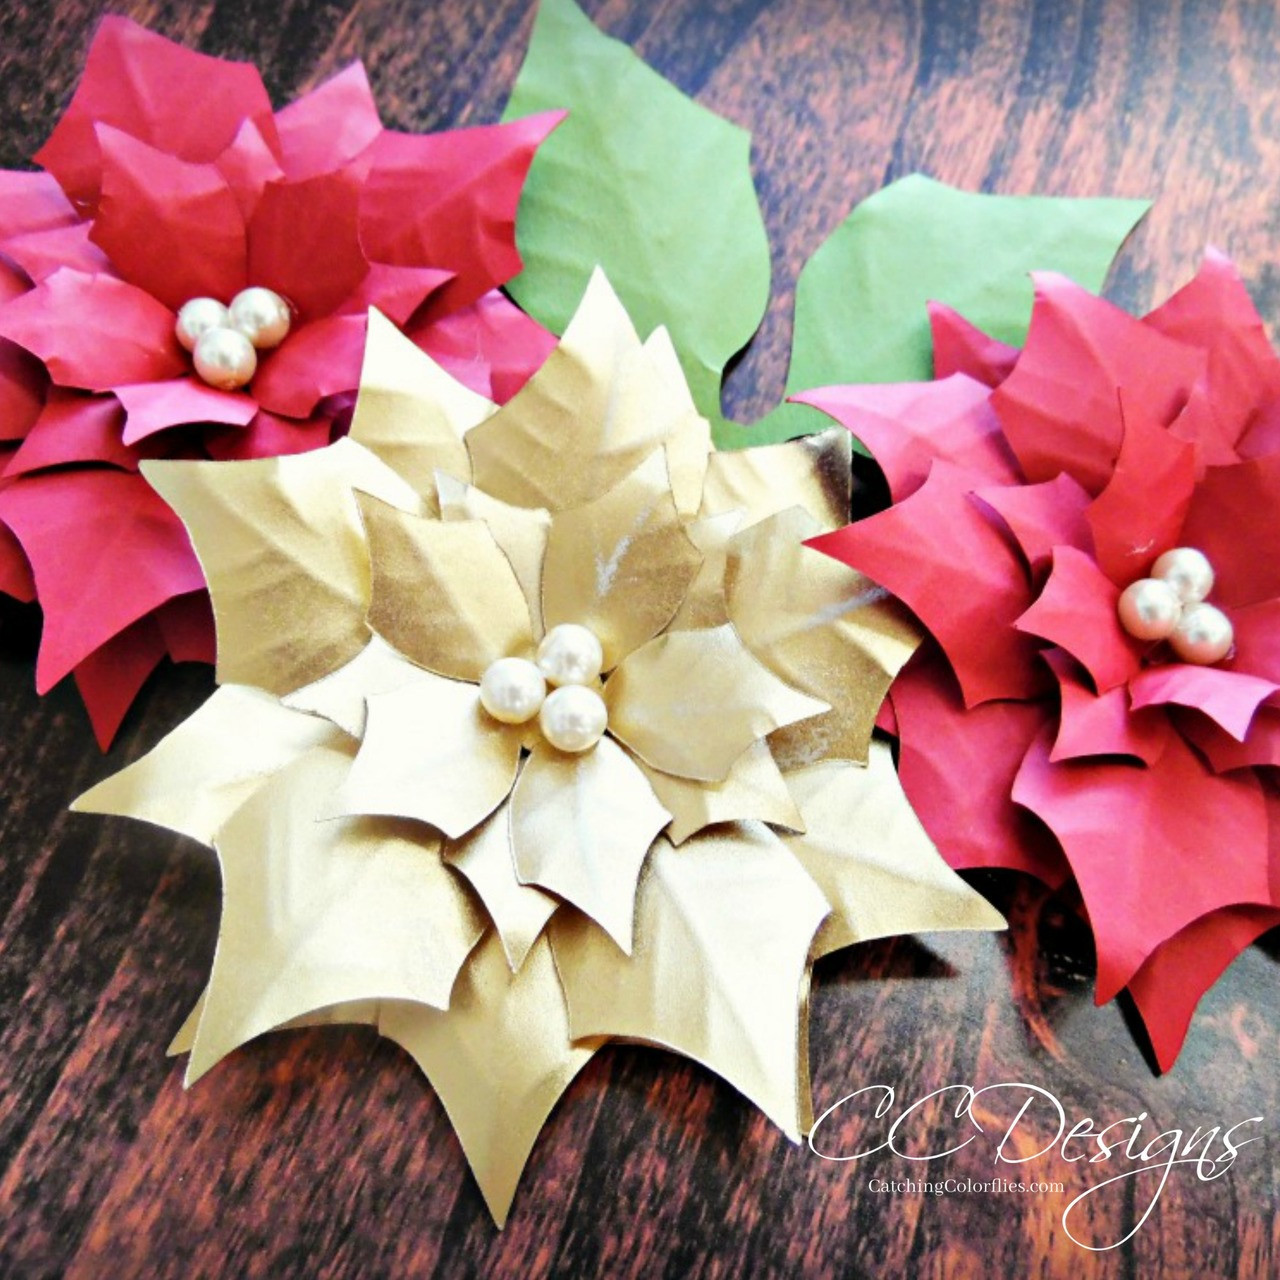 Small poinsettia paper flower diy template catching colorlfies mightylinksfo